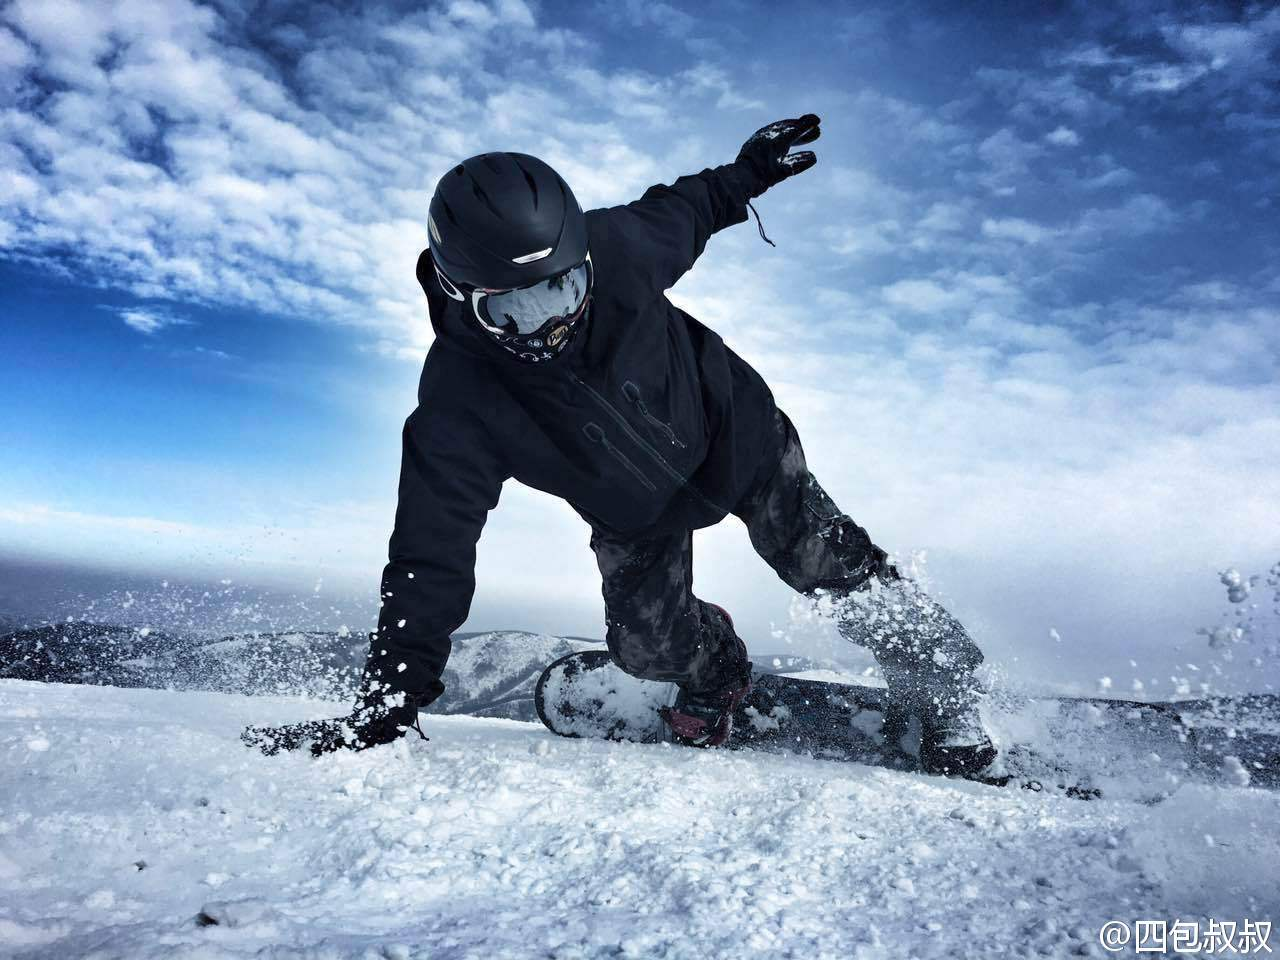 Snowboarding High Quality Background on Wallpapers Vista